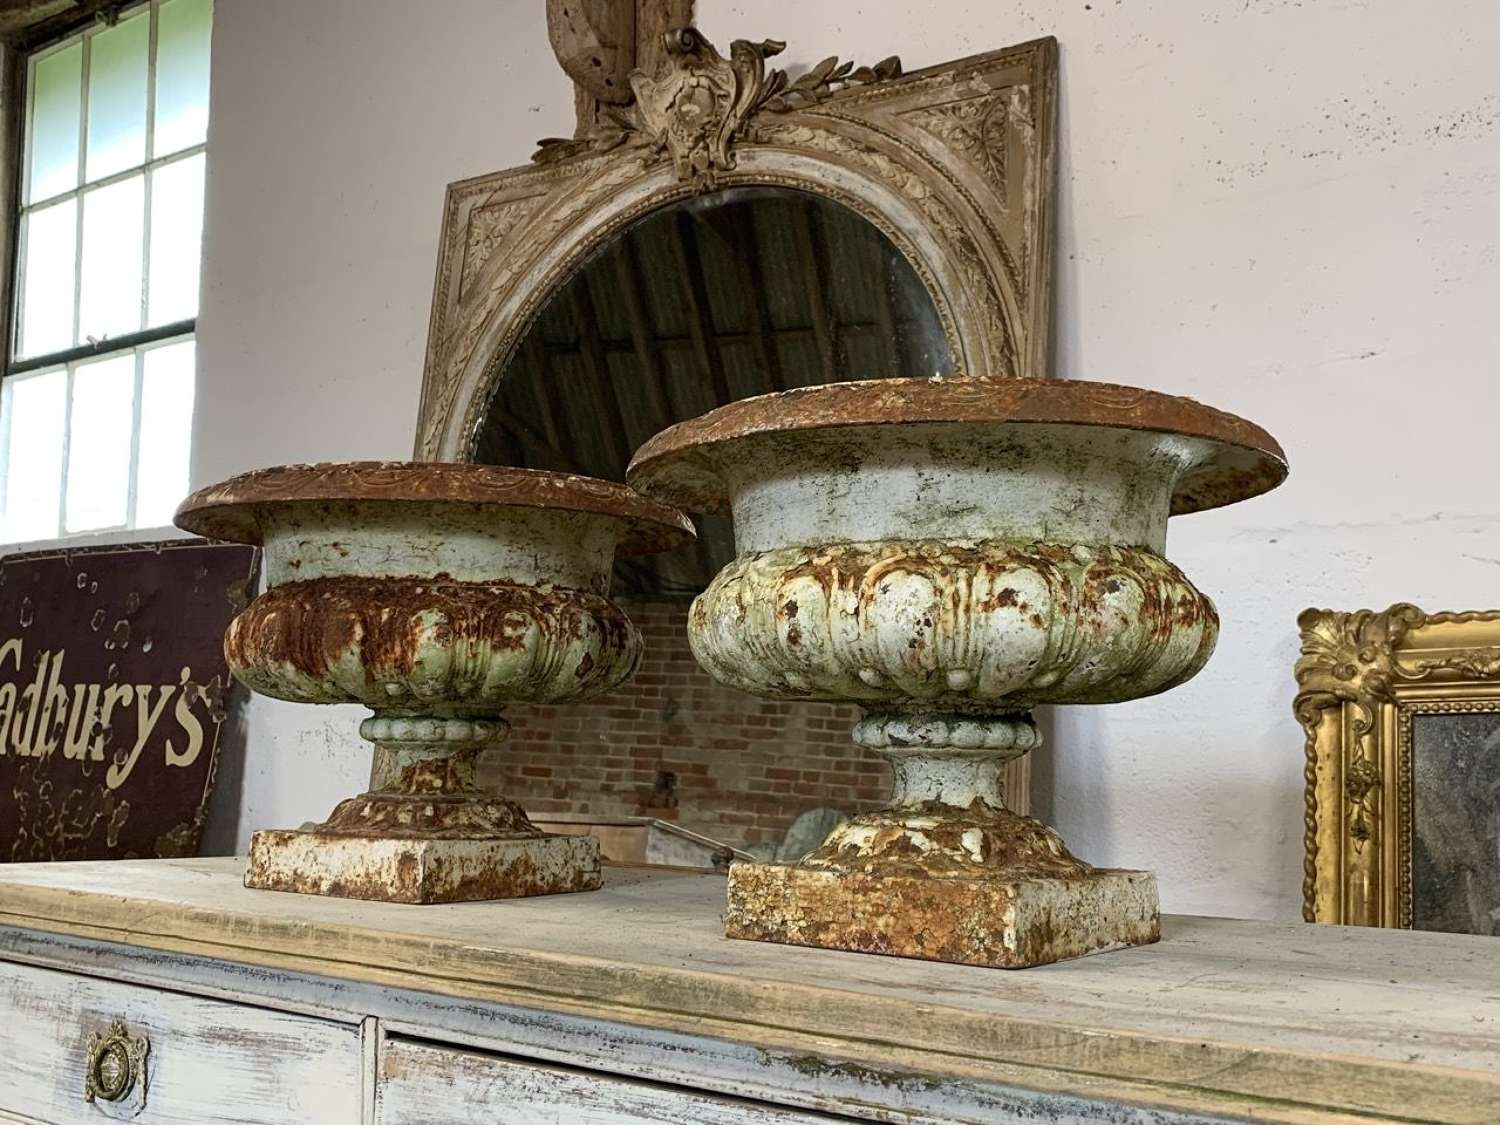 PAIR OF 19TH CENTURY FRENCH CAST IRON URNS